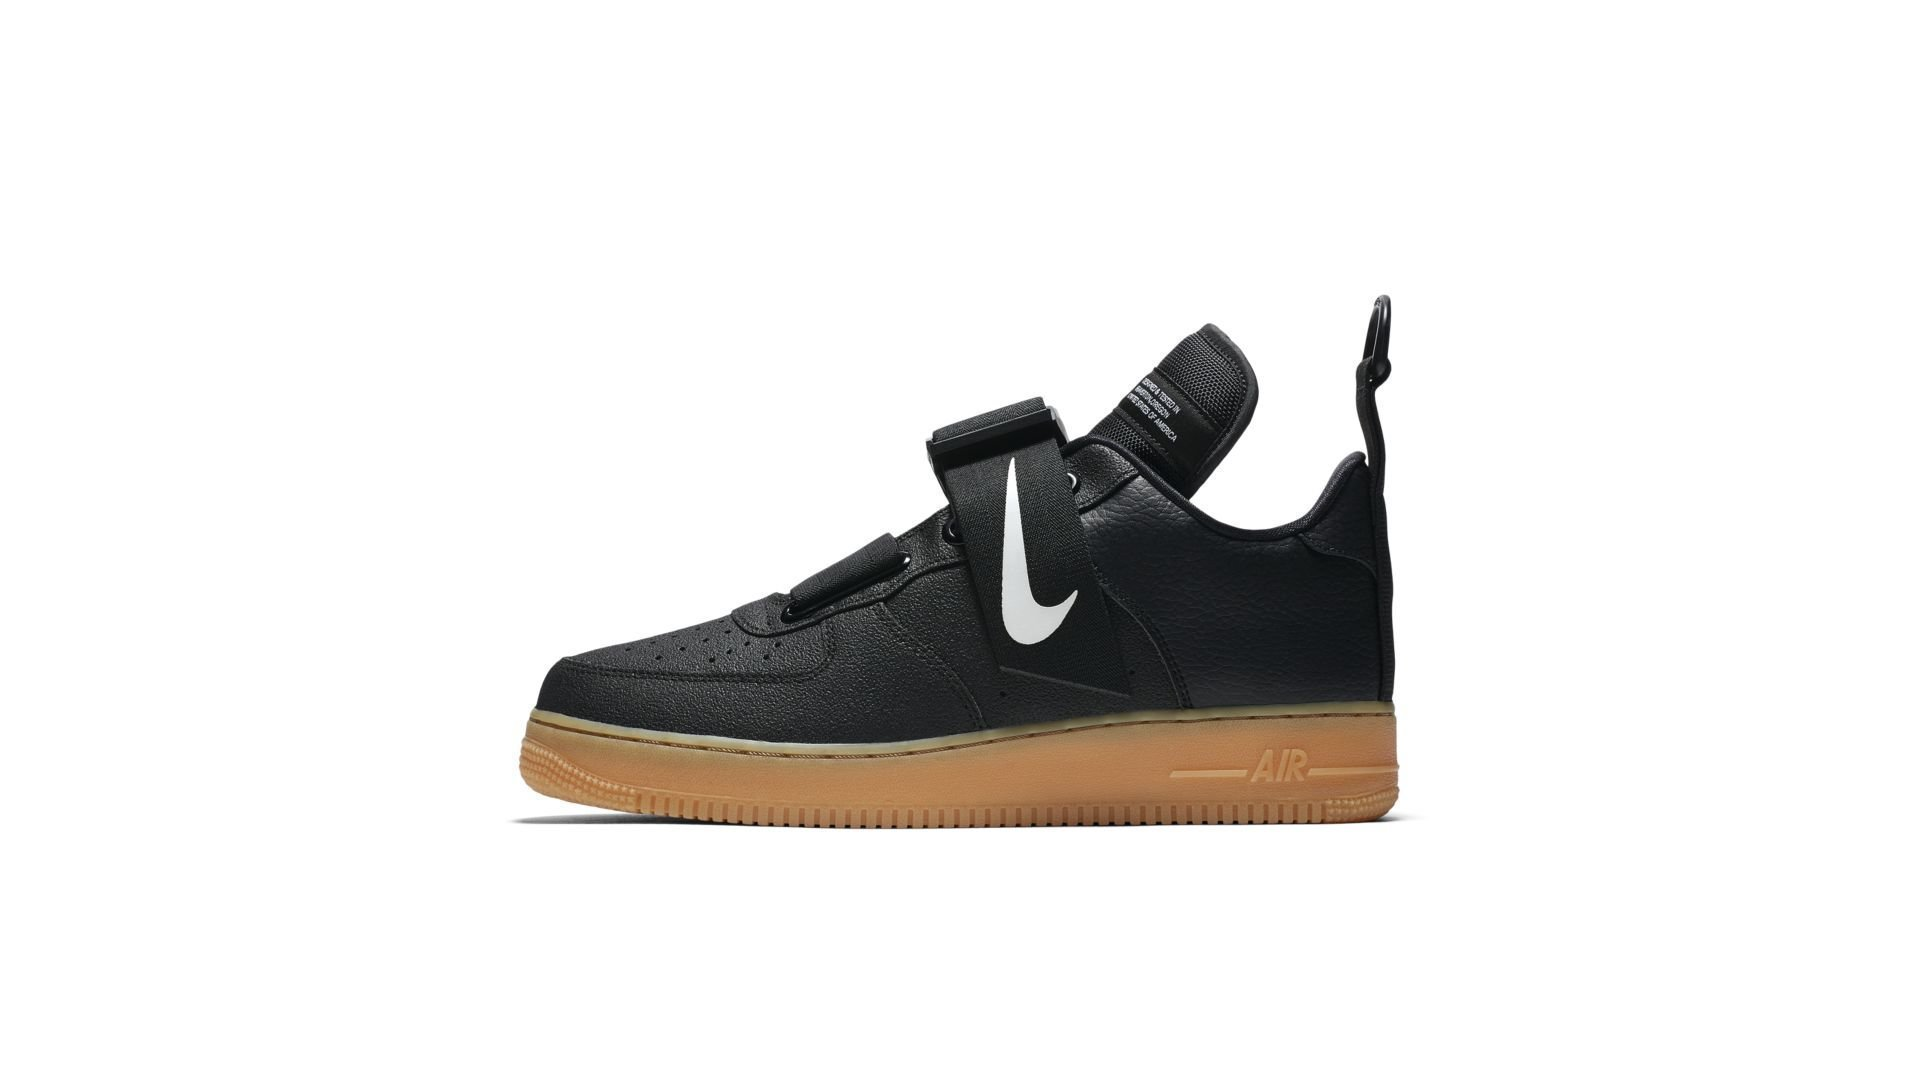 NIKE AIR FORCE 1 UTILITY AO1531-002